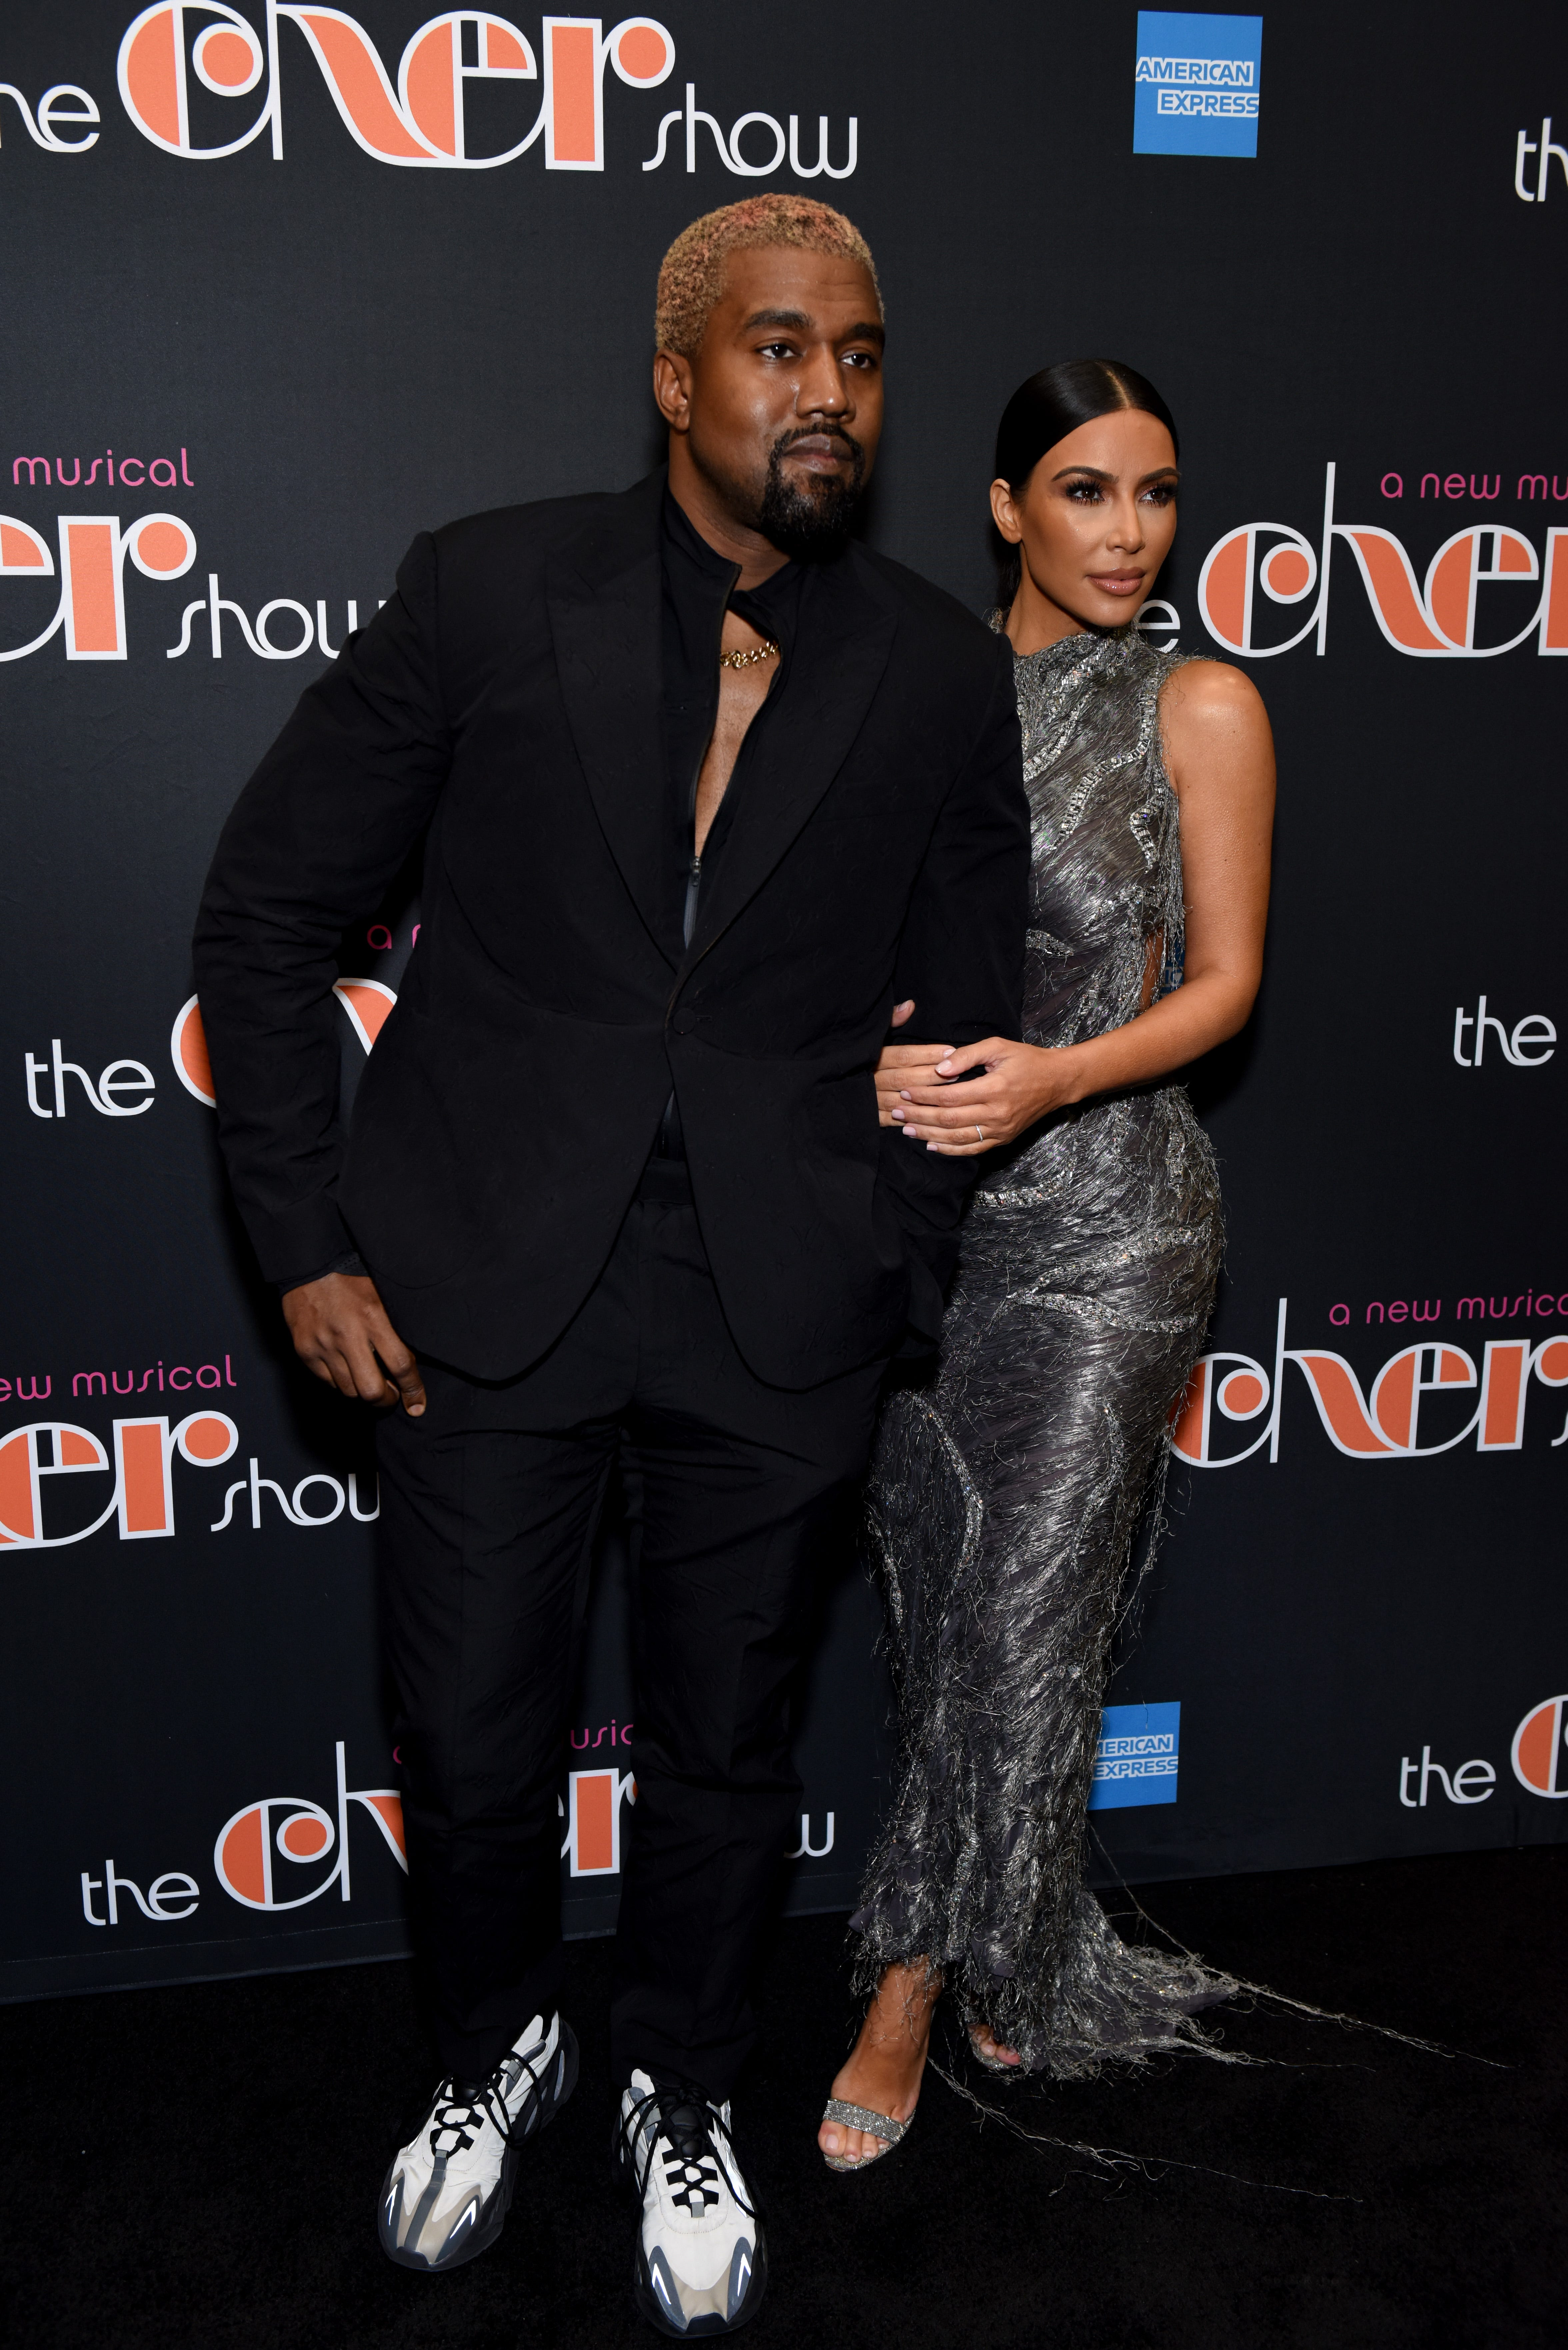 Kim Kardashian: Kanye West wasn't referring to R. Kelly with controversial comments